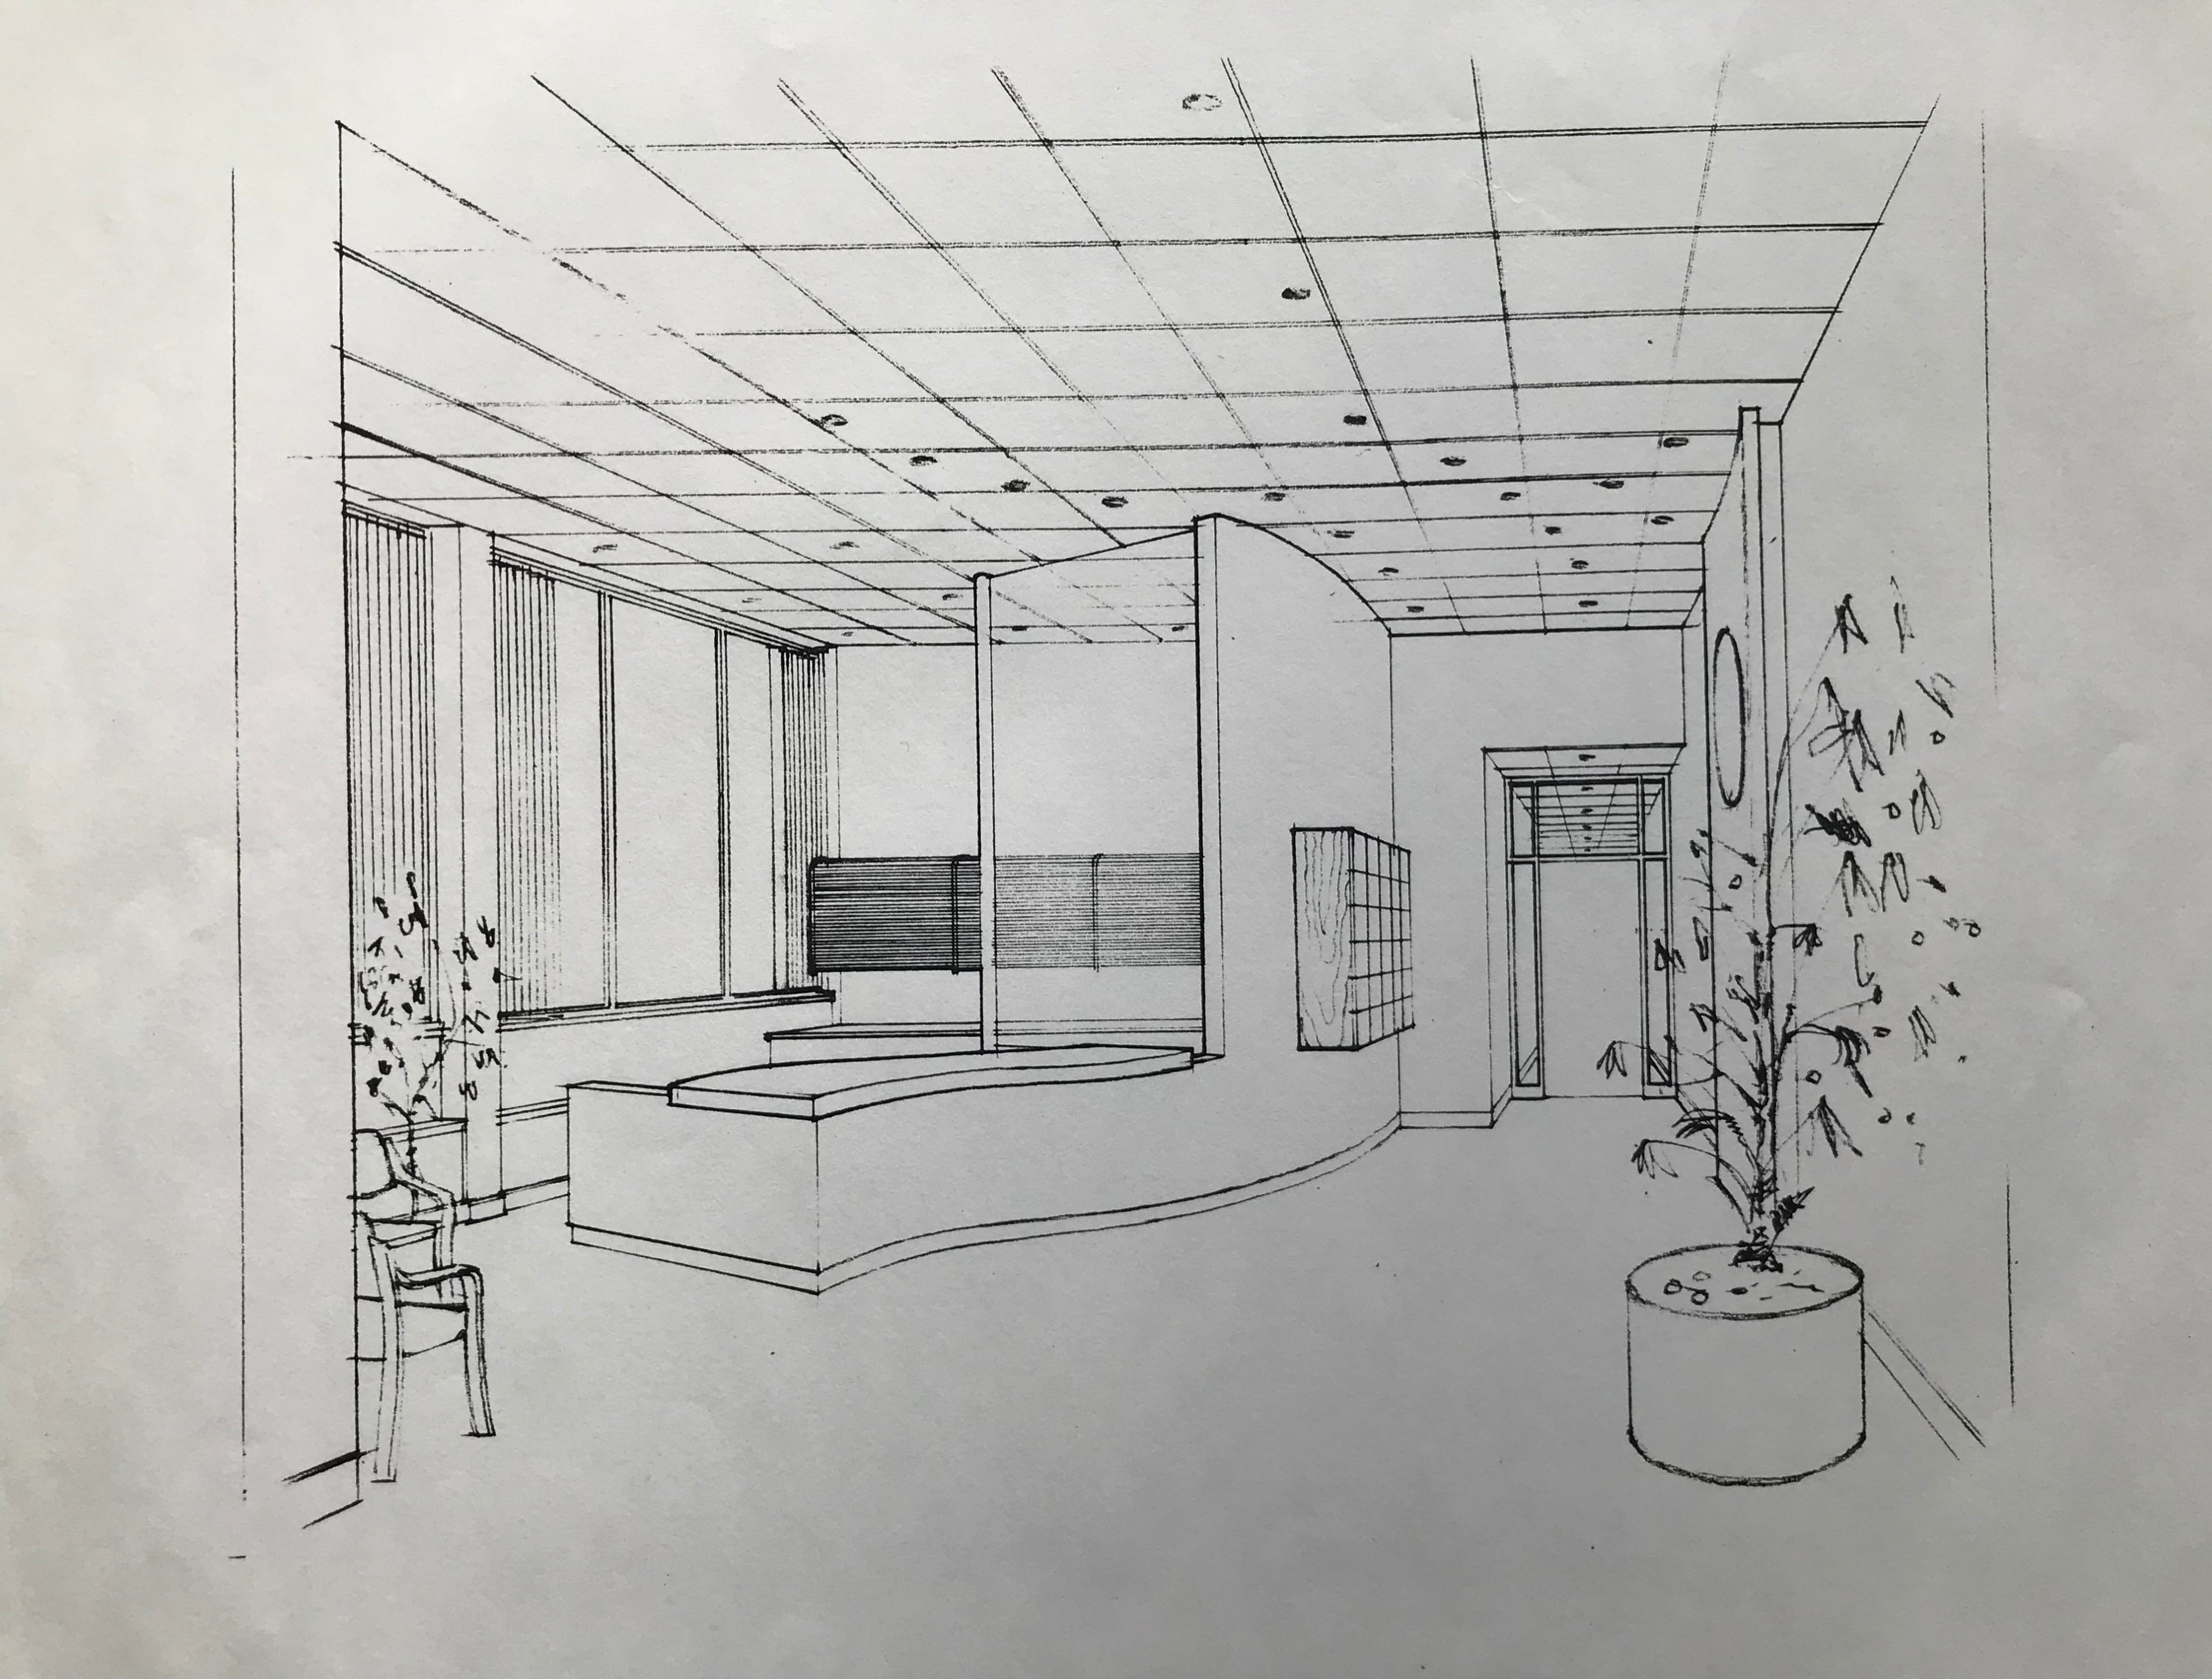 Reception area sketch